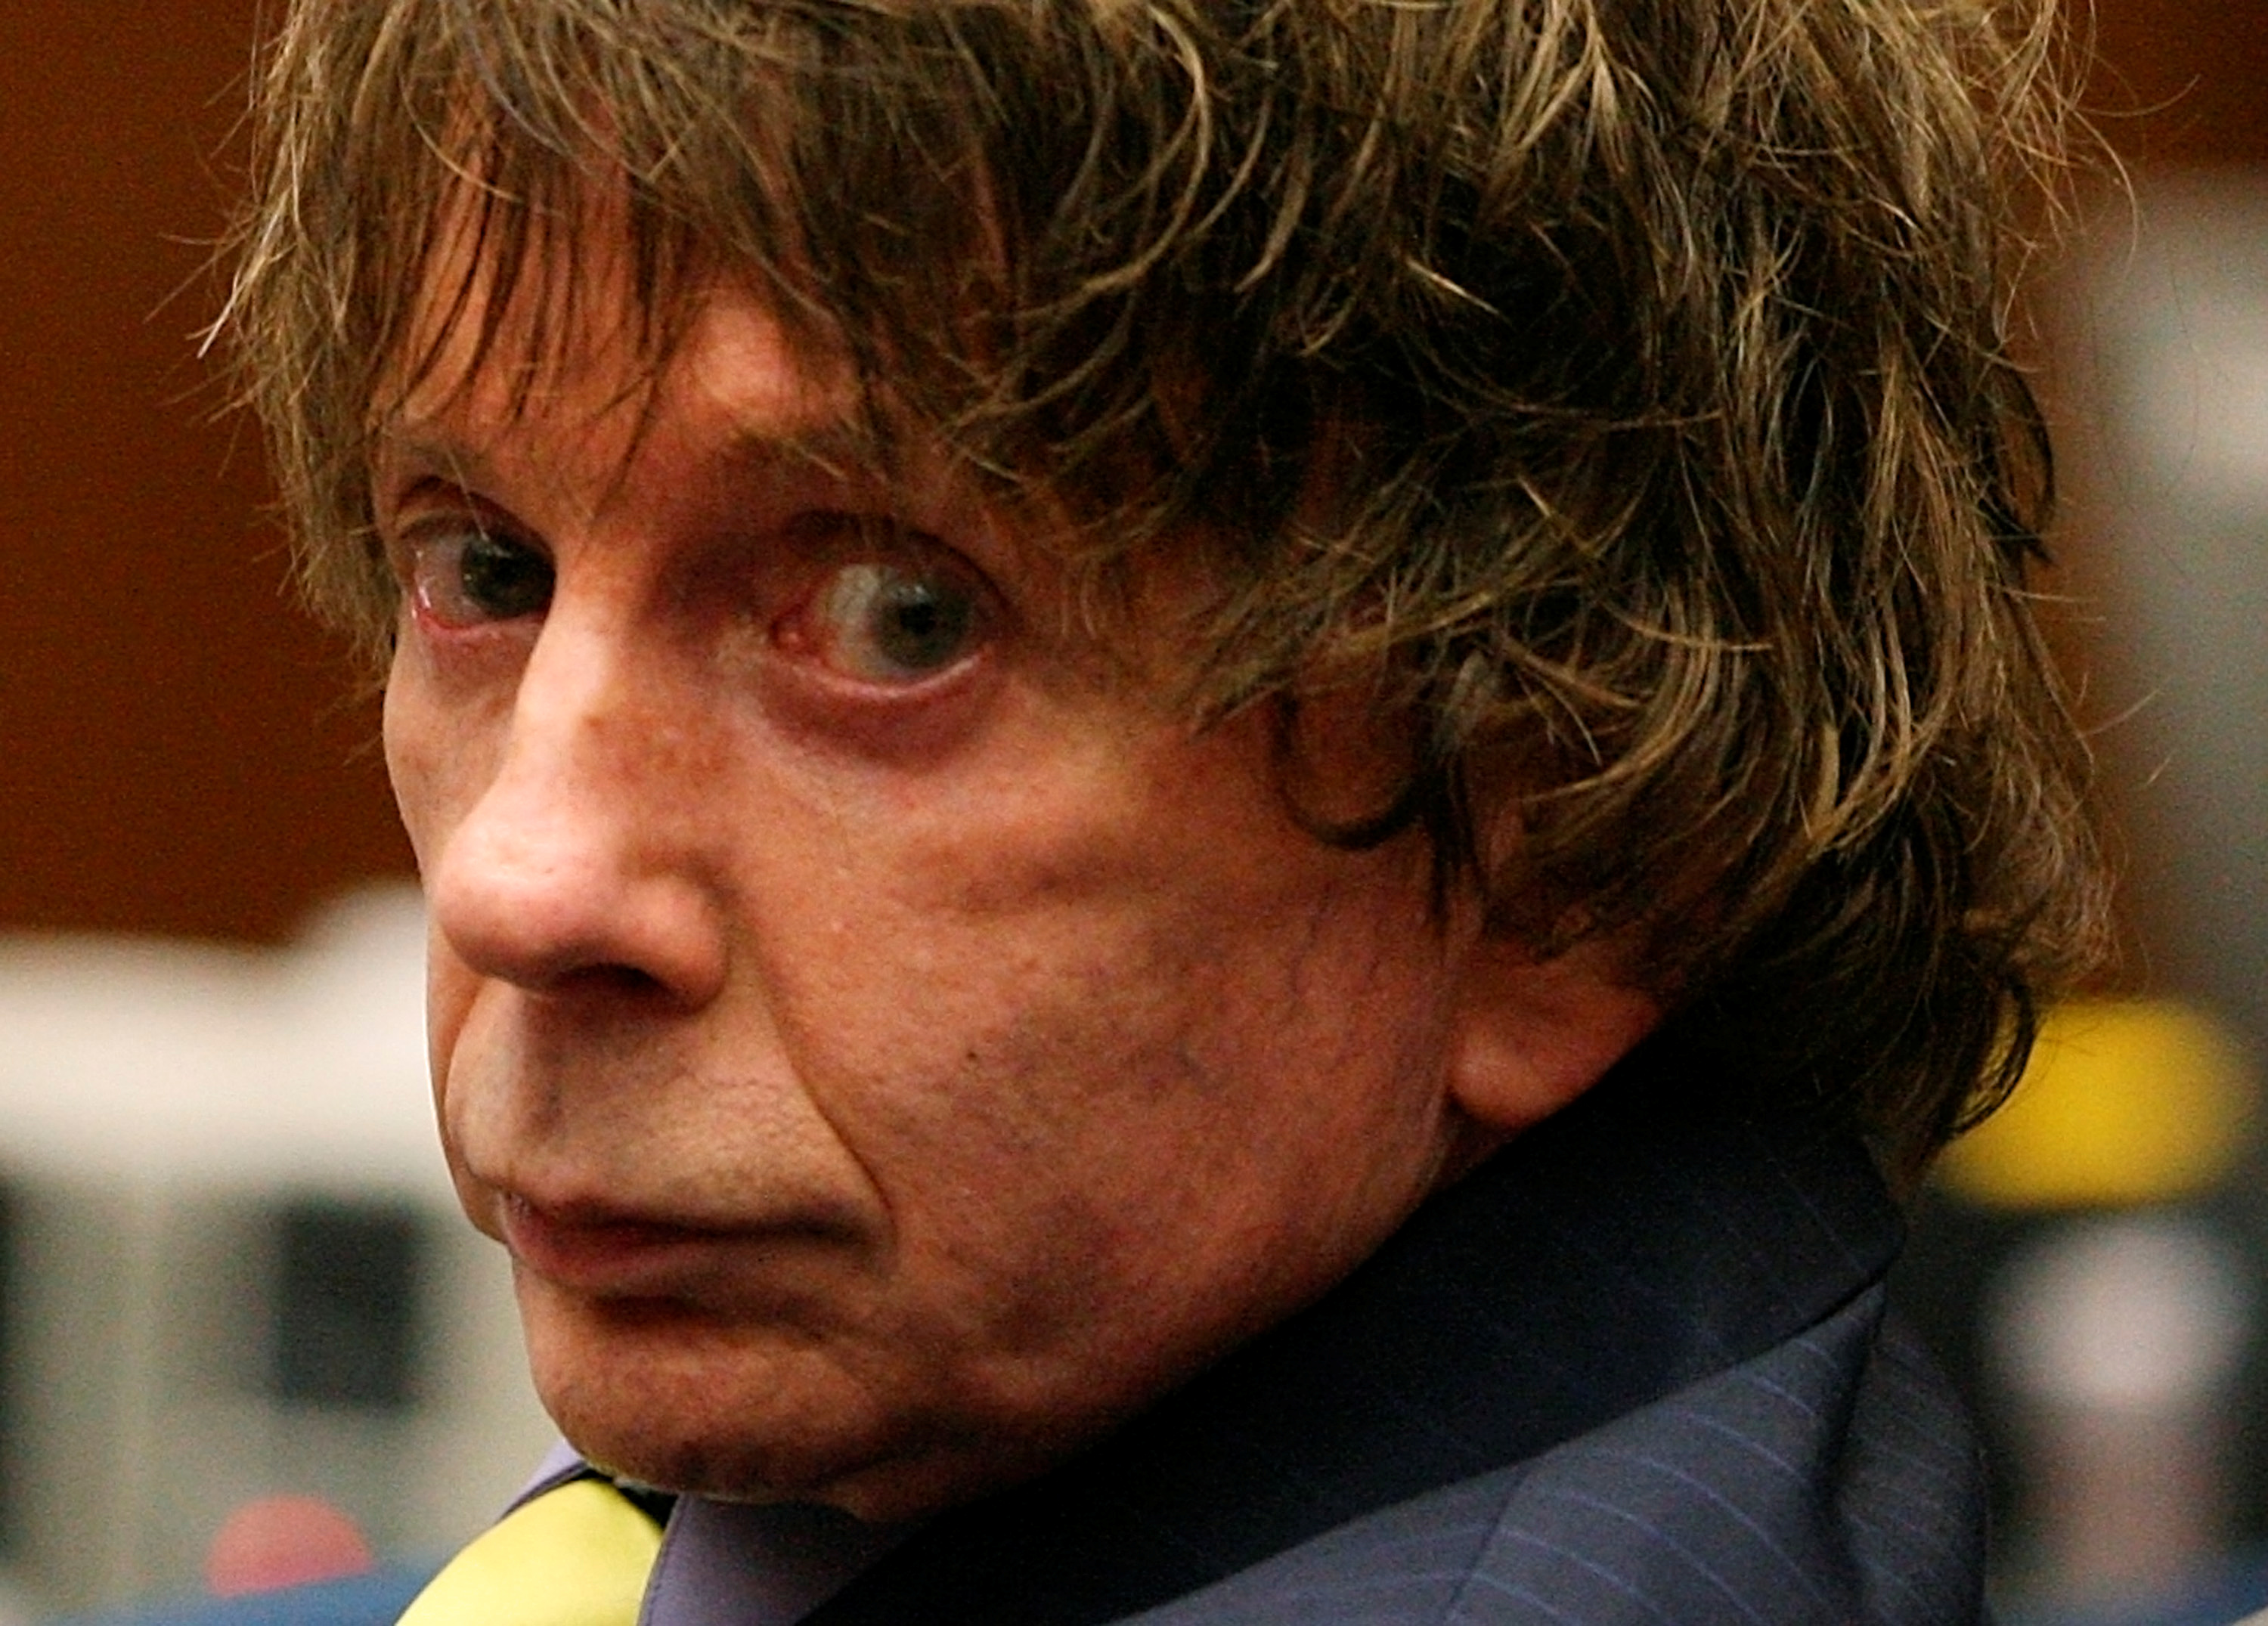 Music producer Phil Spector appears in court during his murder trial at Los Angeles Superior Court in Los Angeles August 16, 2007. Spector is accused of fatally shooting actress Lana Clarkson in his home in February 2003. REUTERS/Robyn Beck/Pool/File Photo